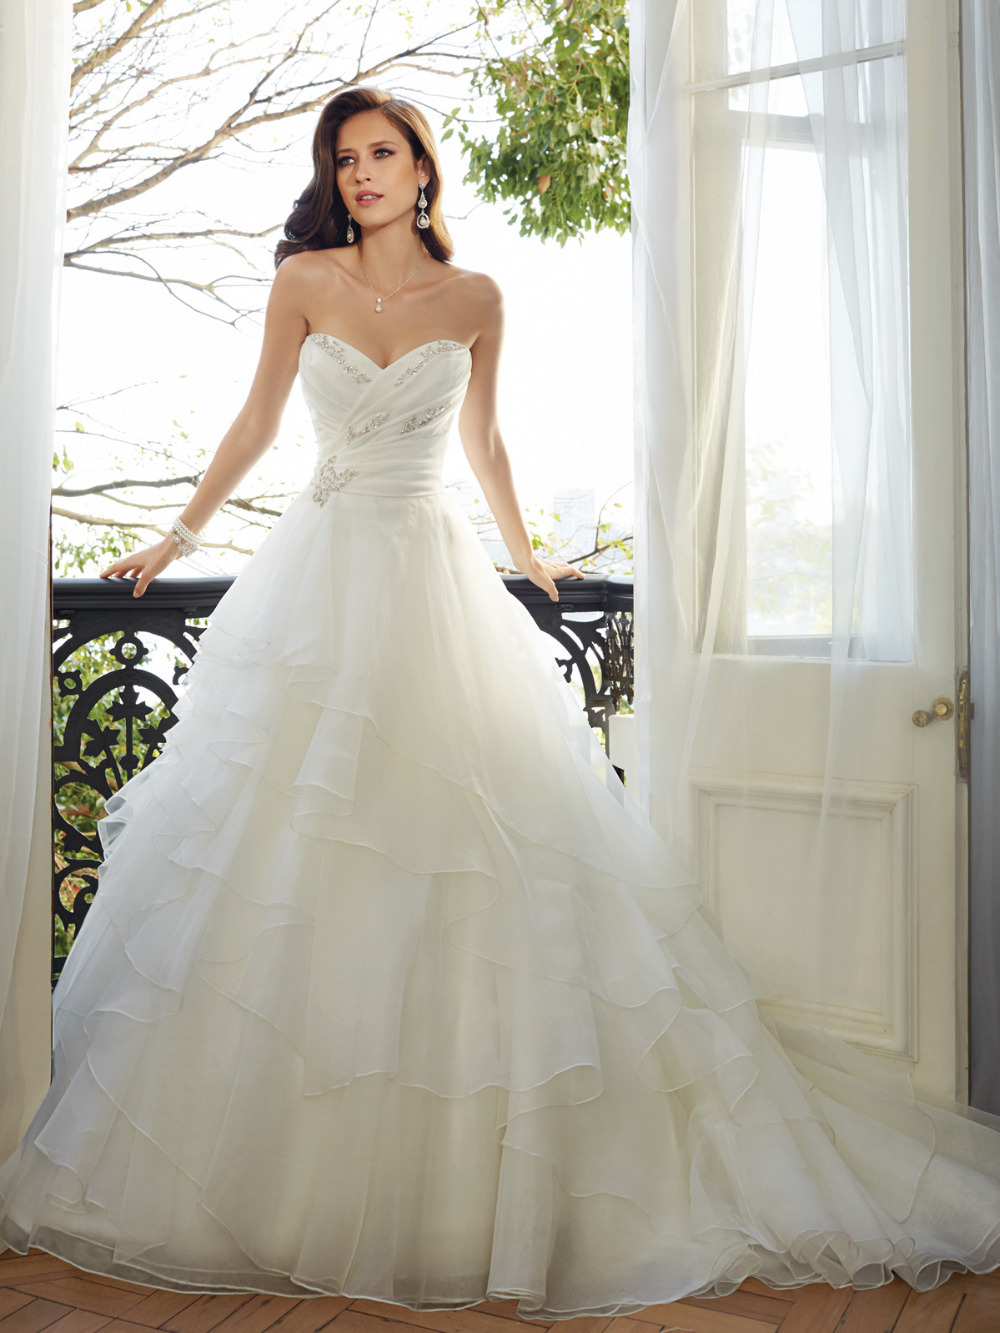 Custom Made Wedding Dresses From China - Wedding Dresses In Jax